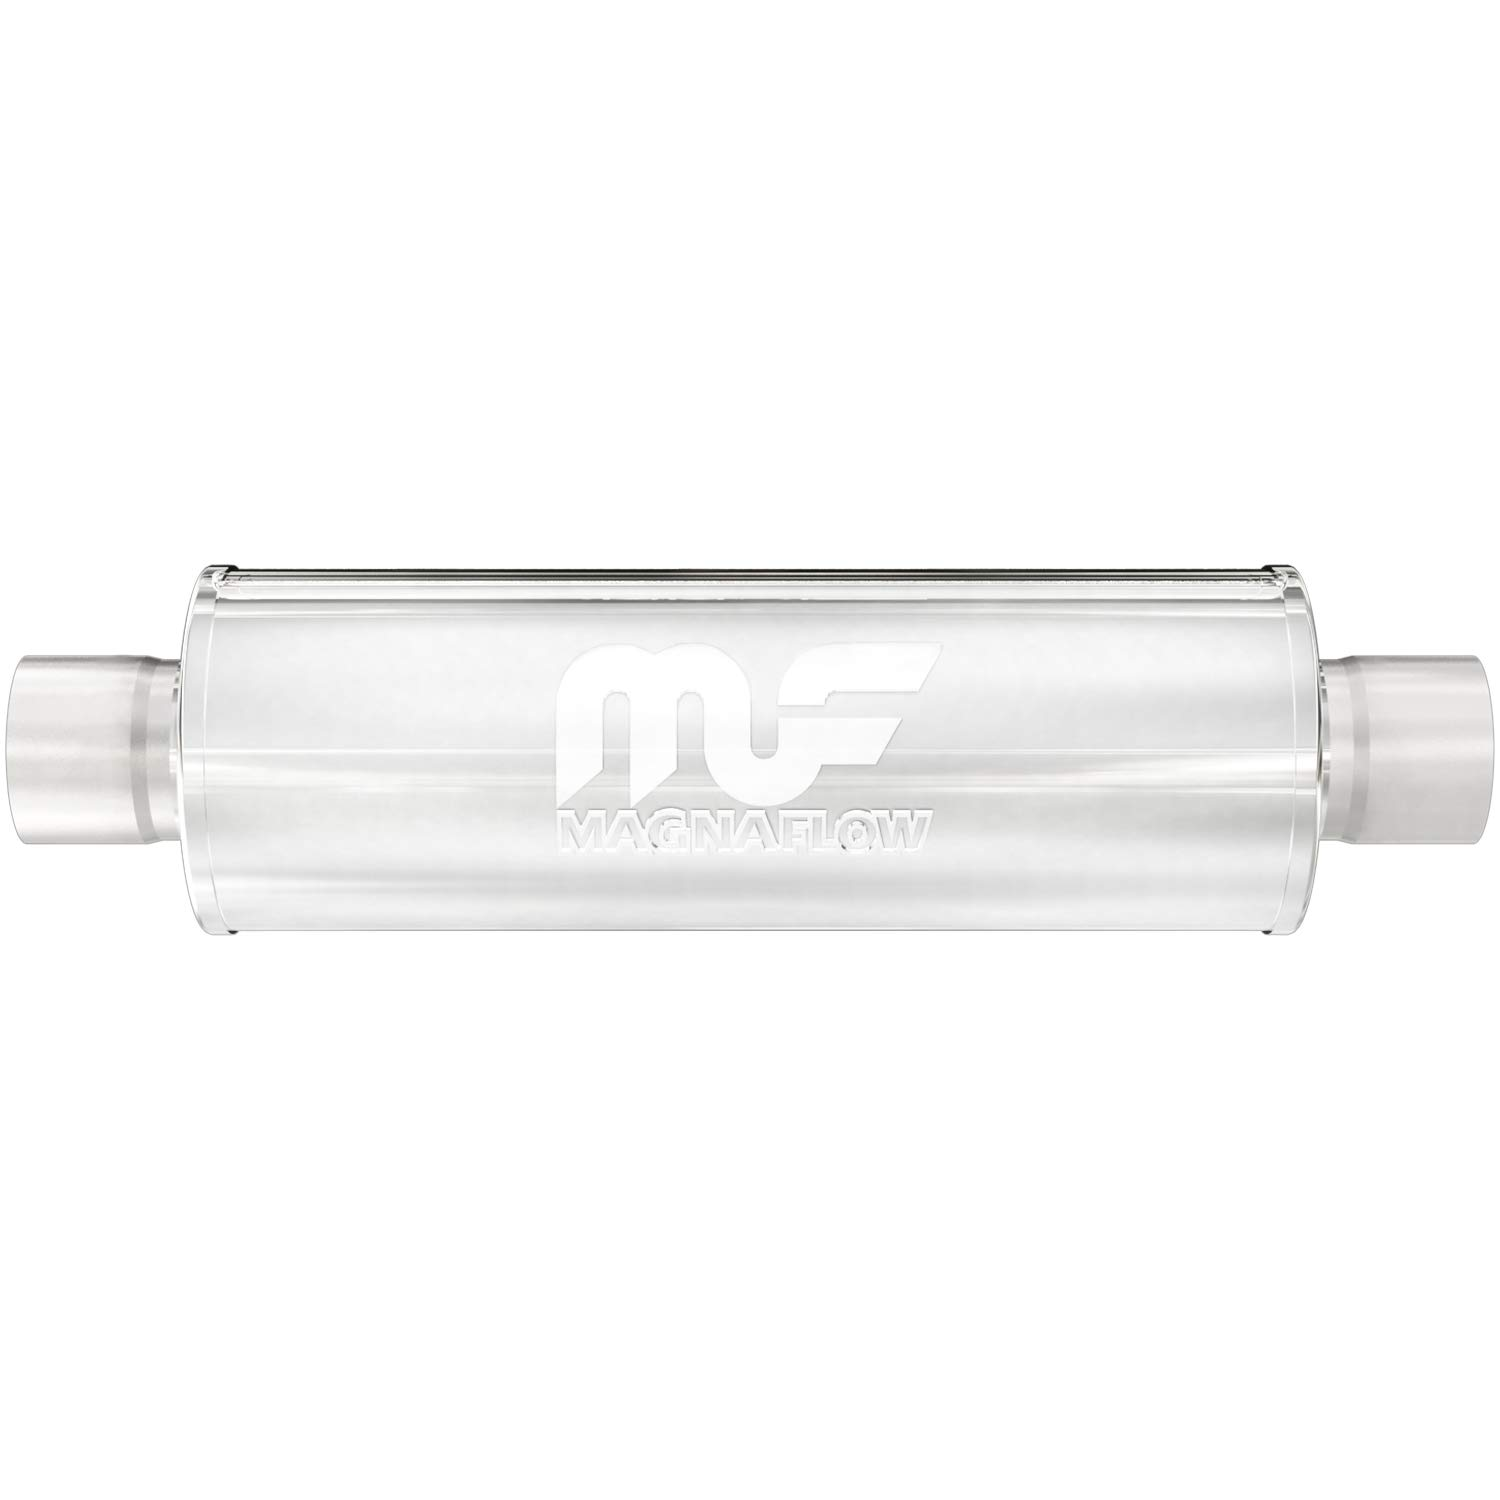 MagnaFlow 4in Round Center/Center Performance Muffler Exhaust 10416 - Straight-Through, 2.5in Inlet/Outlet, 14in Body Length, 20in Overall Length, Satin Finish - Classic Deep Exhaust Sound